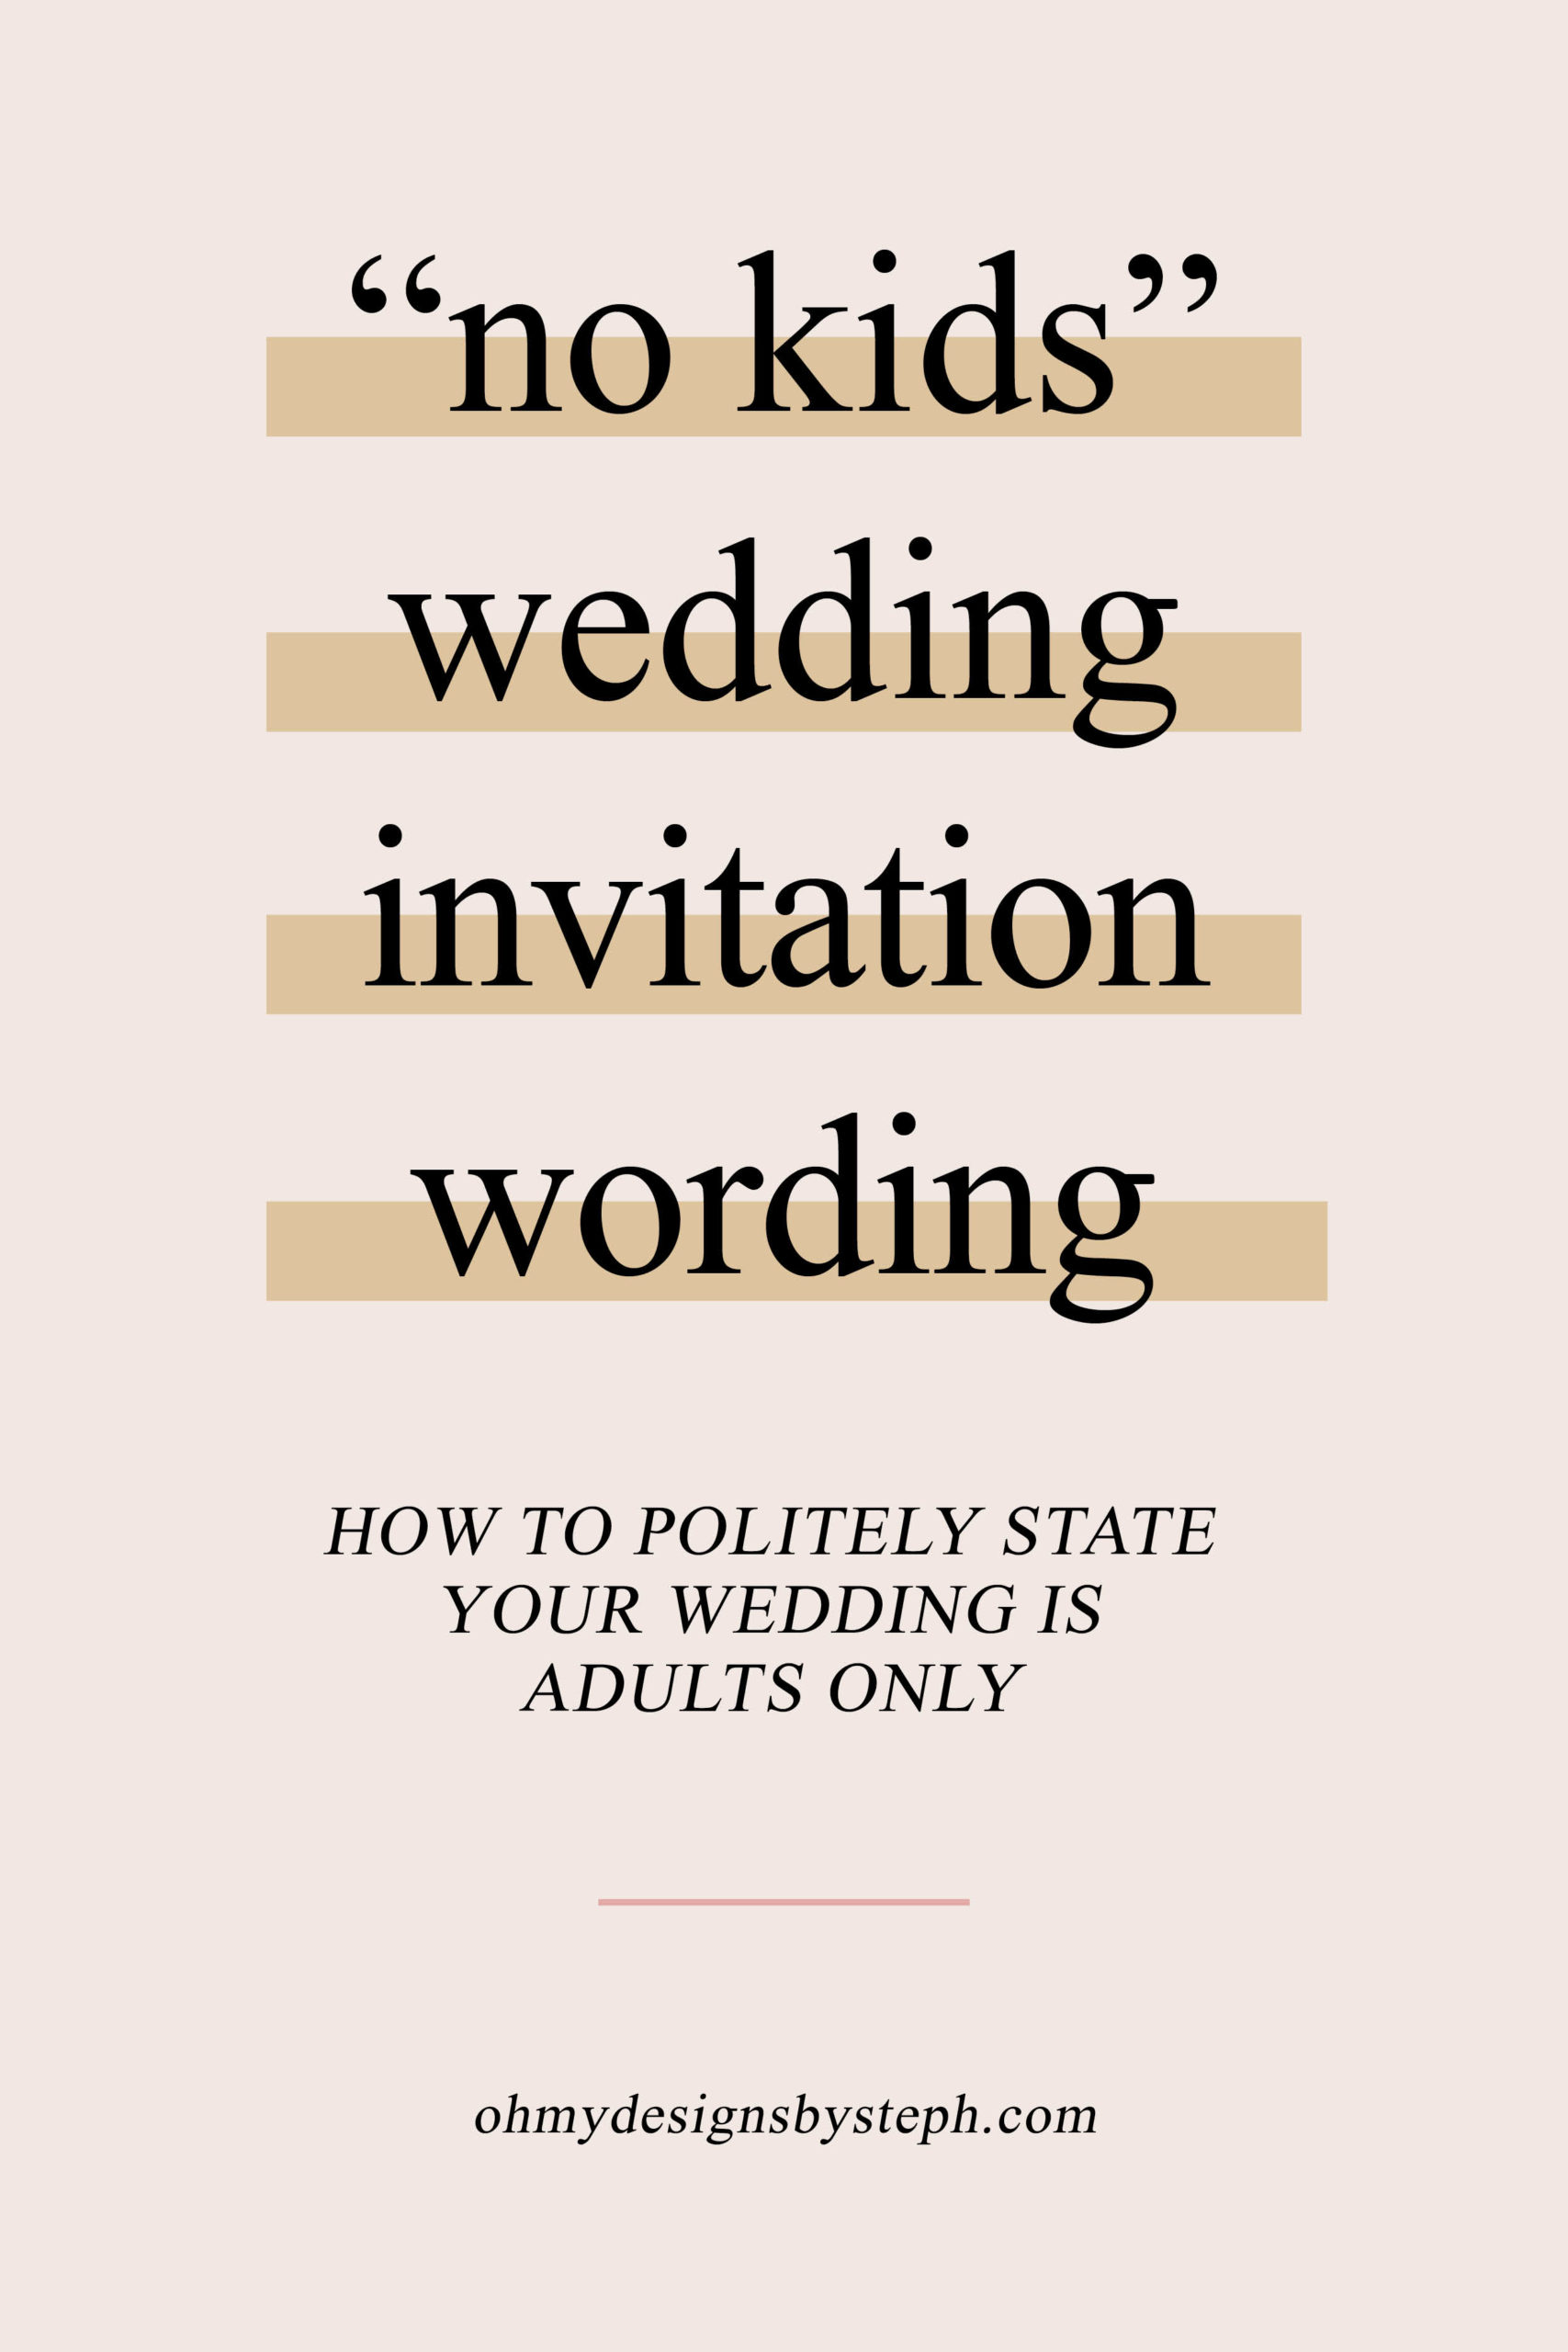 No Kids Wedding Invitation Wording Oh My Designs By Steph